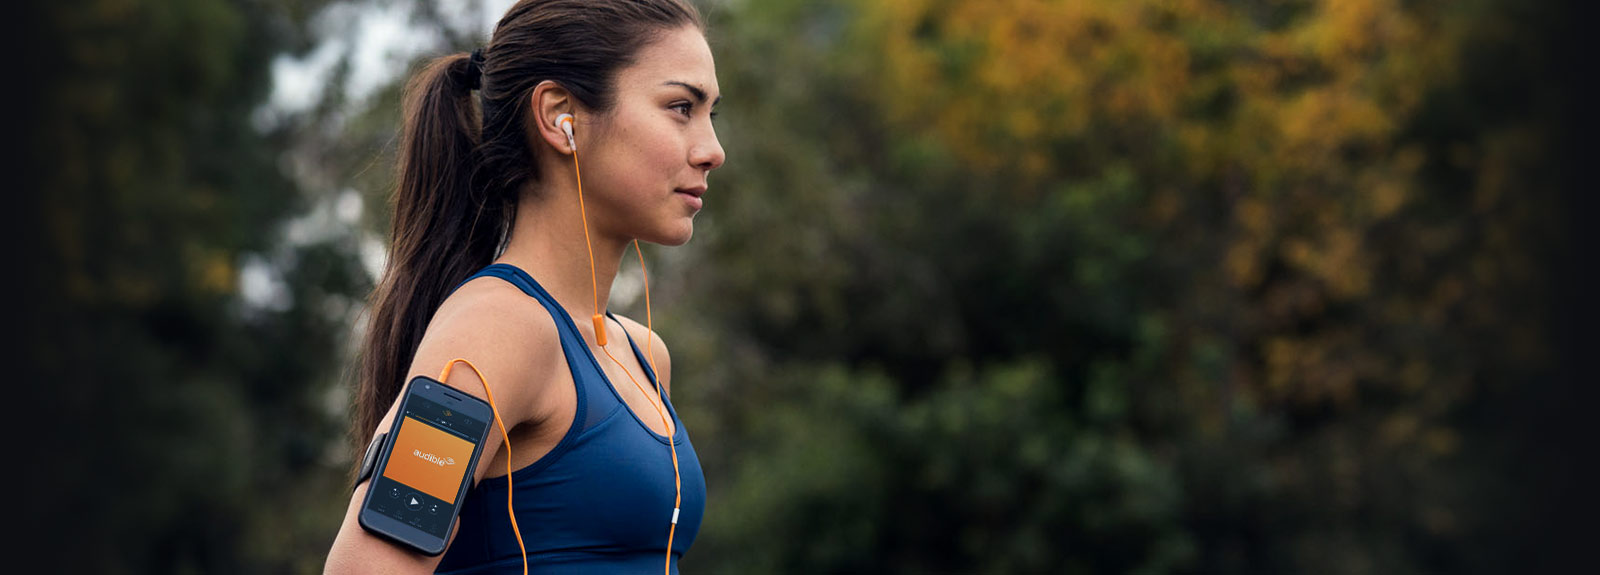 Girl in blue shirt listening to an audiobook with her smartphone while exercising.